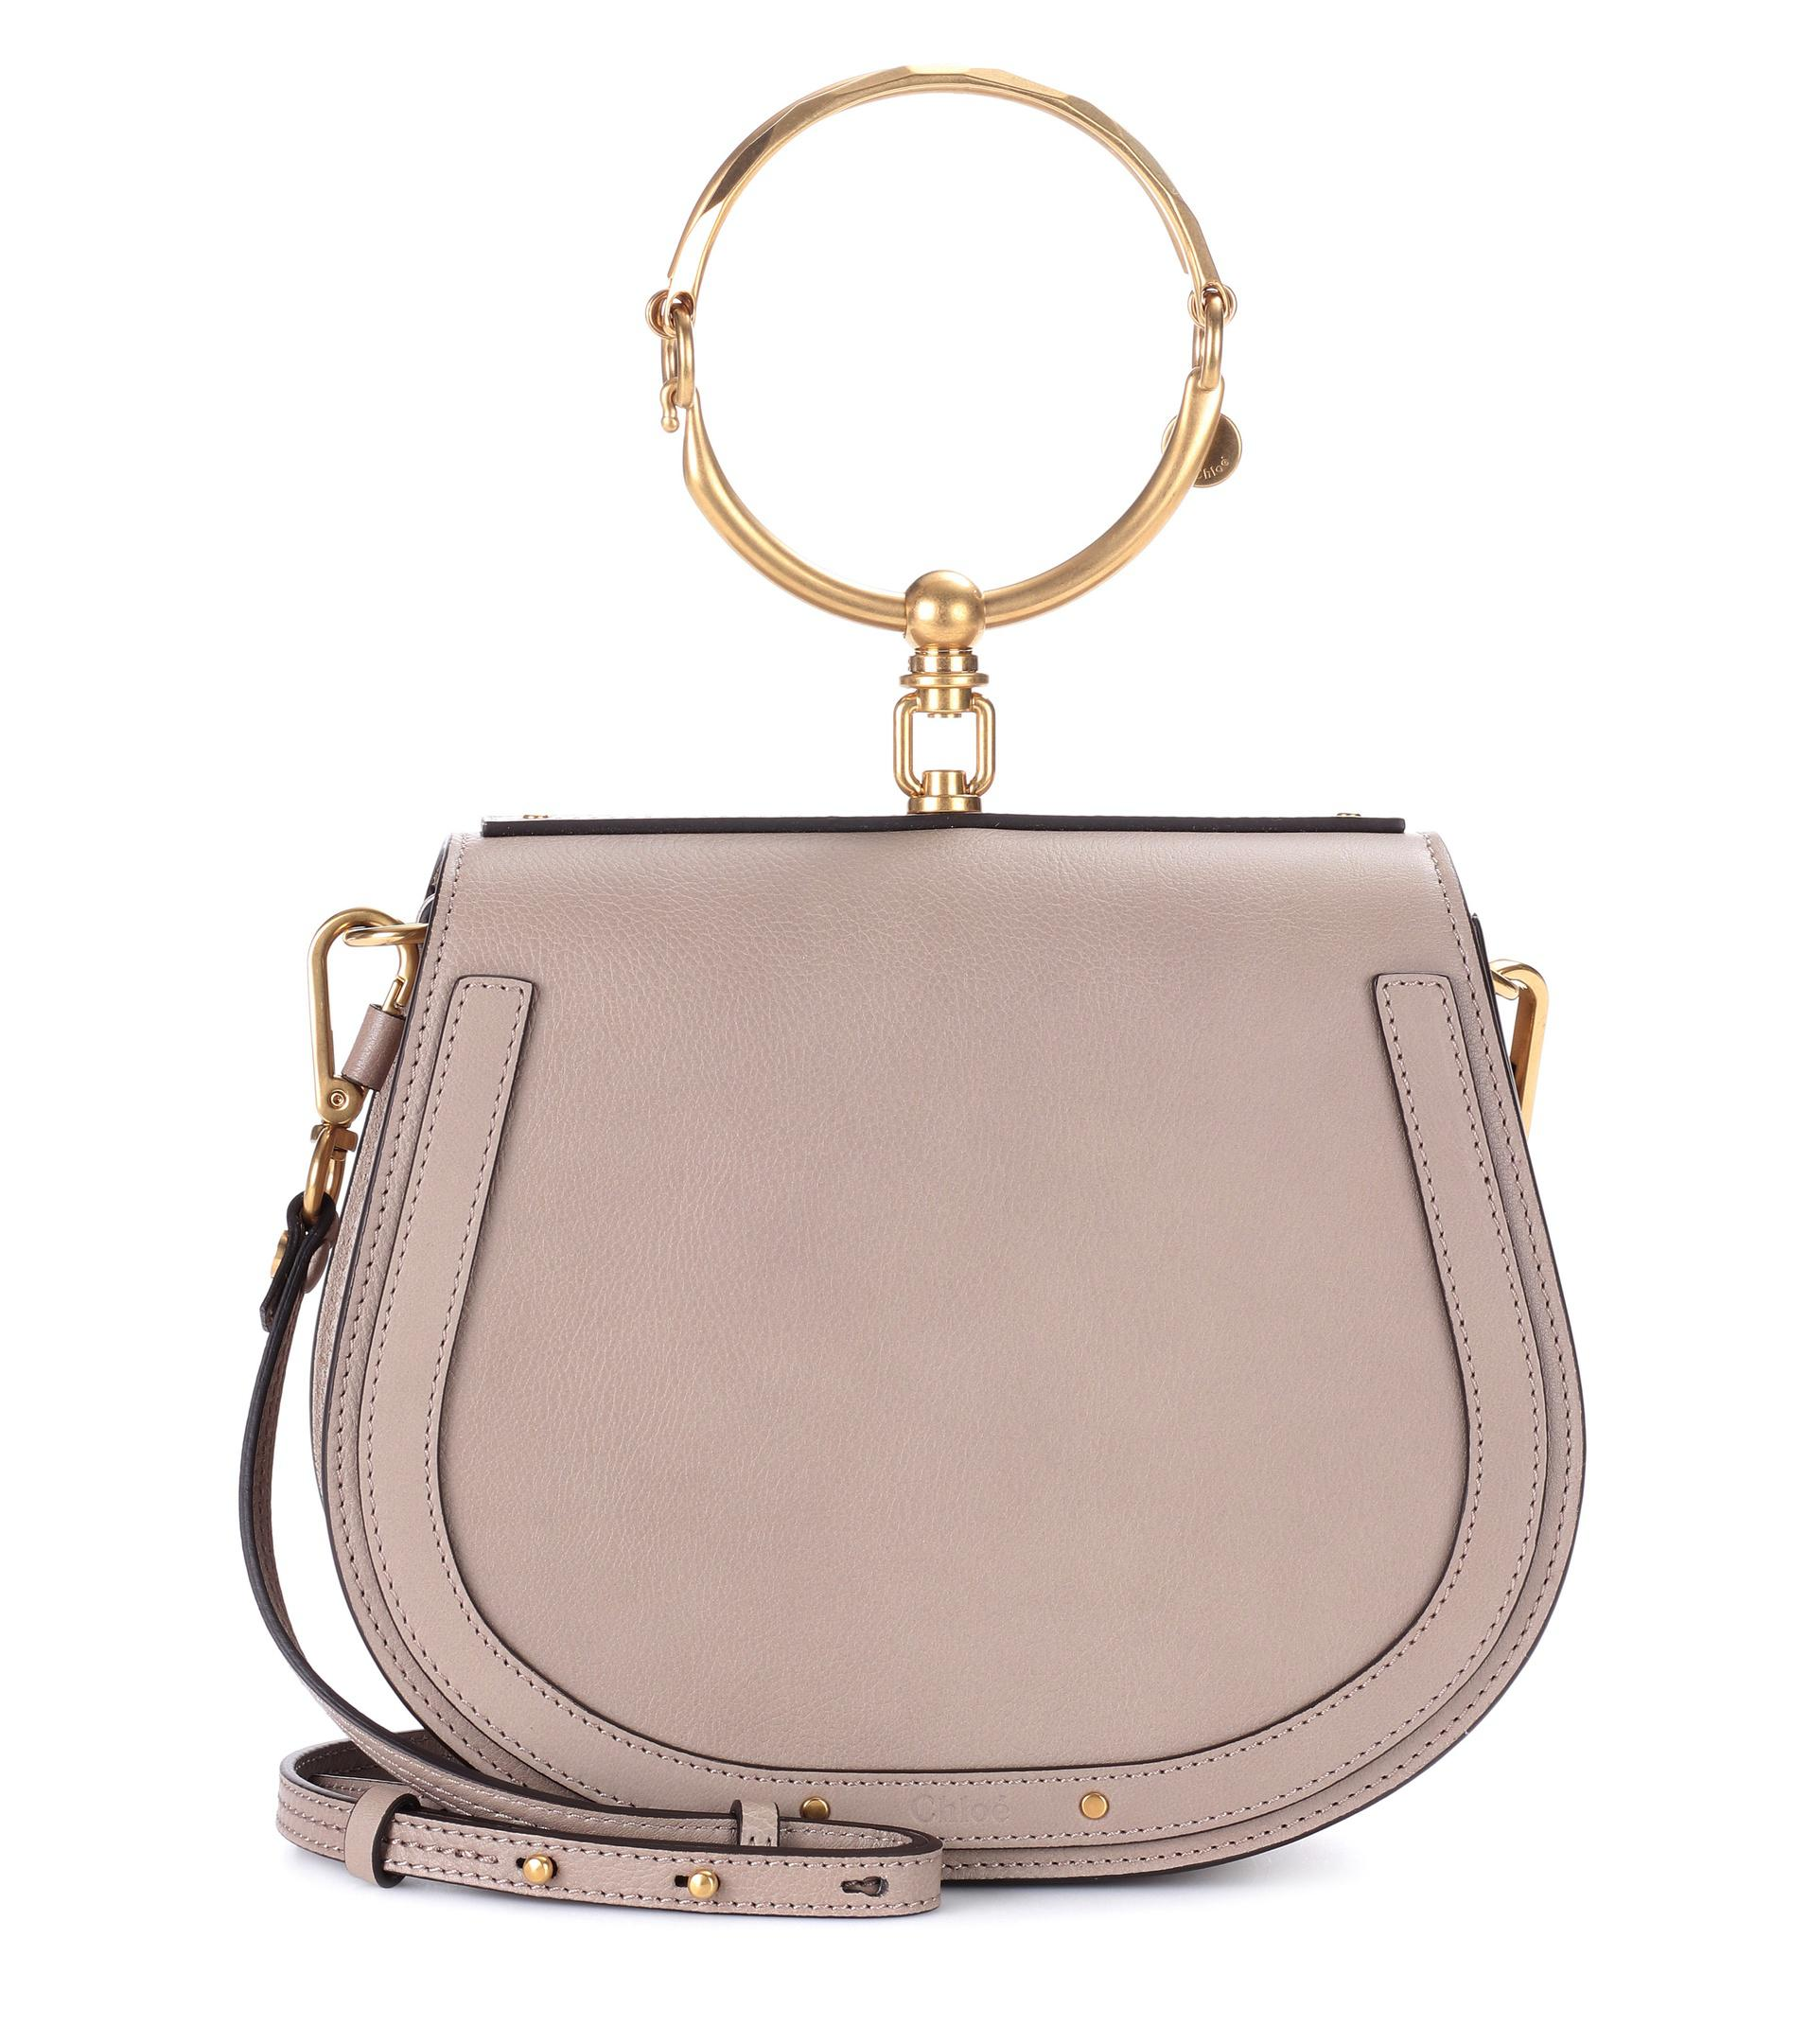 Nile shoulder bag - Grey Chlo WNrWsDfwP2